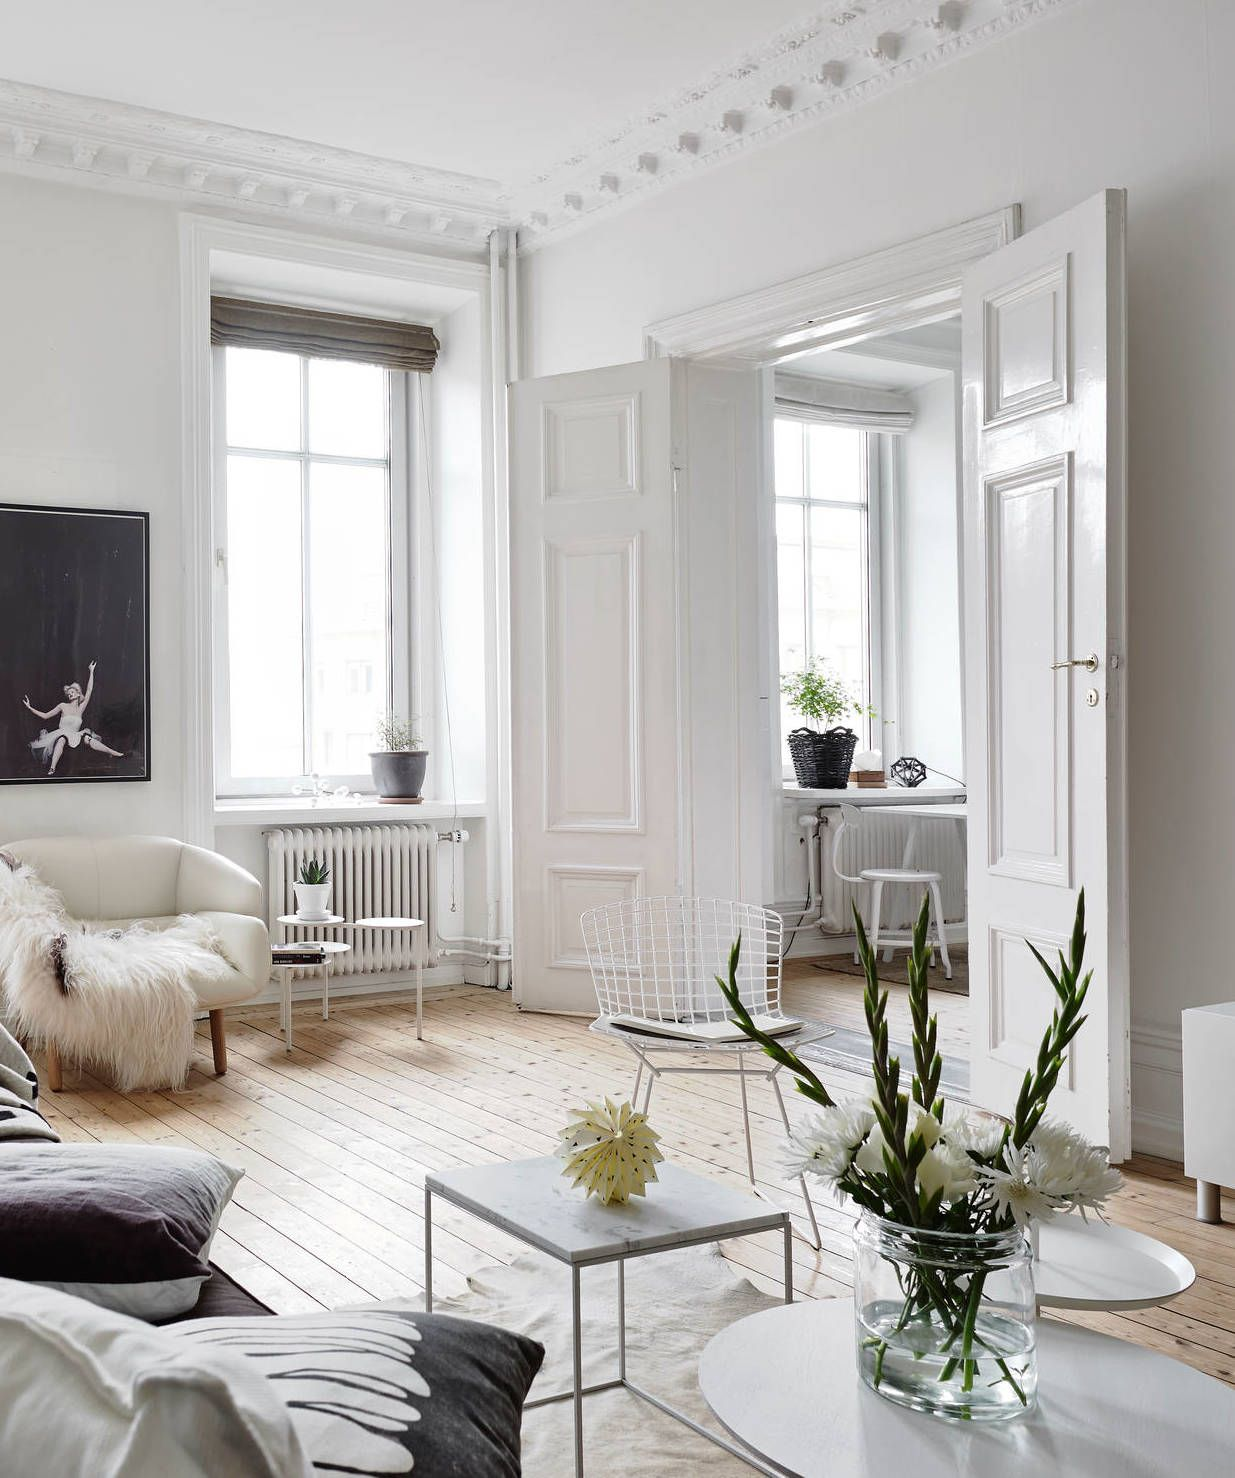 Wohnzimmer Einrichten Altbau Neutrals And Clean Lines In An Old Building Home Sweet Home